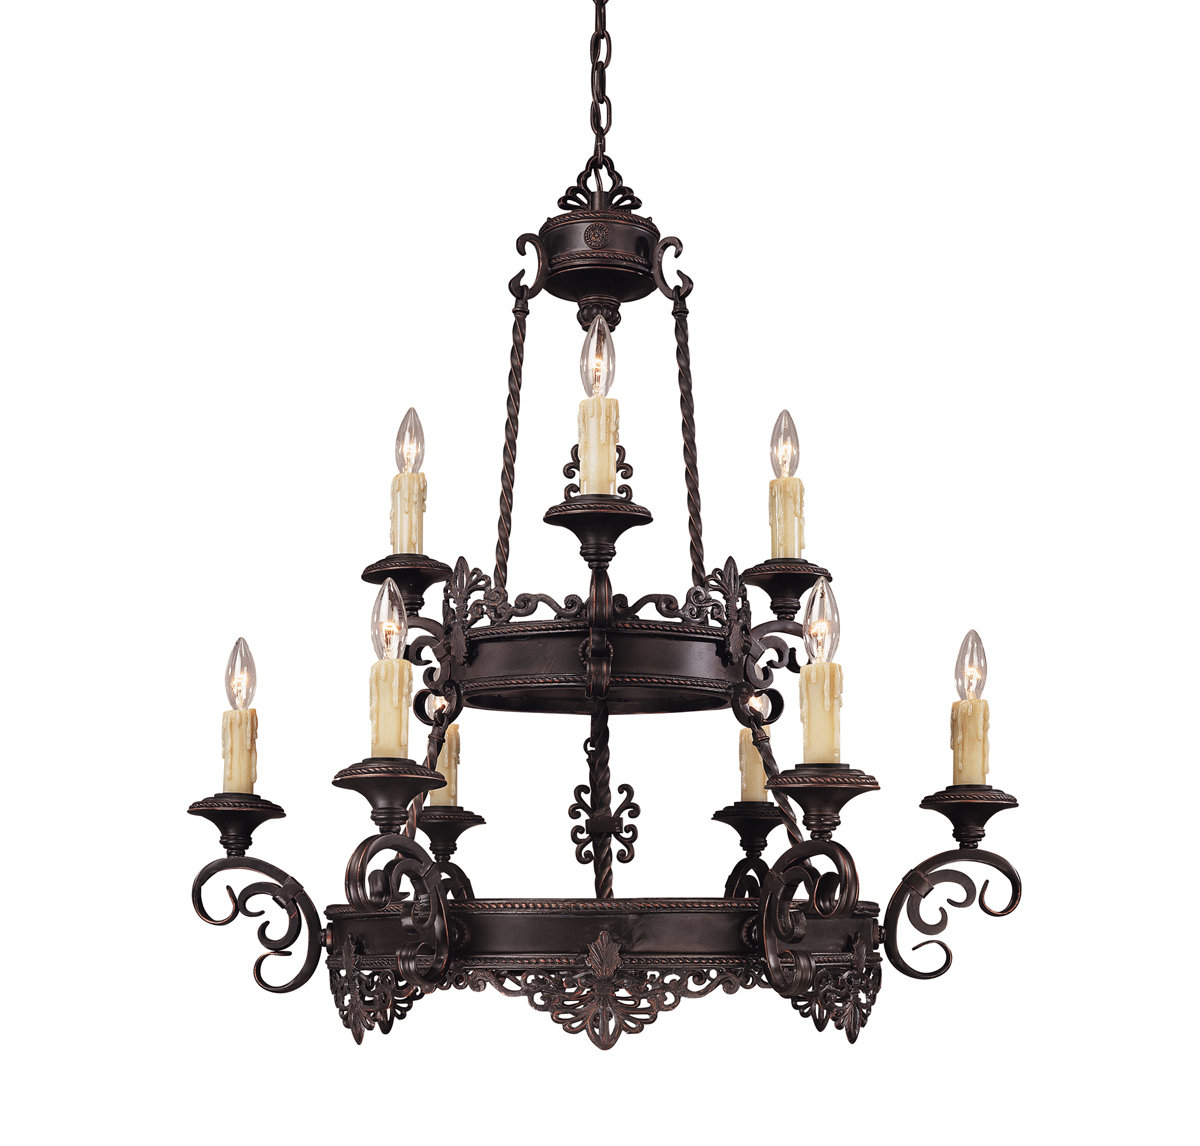 Savoy House Lighting (1-3021-9-25) Barista 9 Light Chandelier in Slate Finish, Designed by Karyl Pierce Paxton